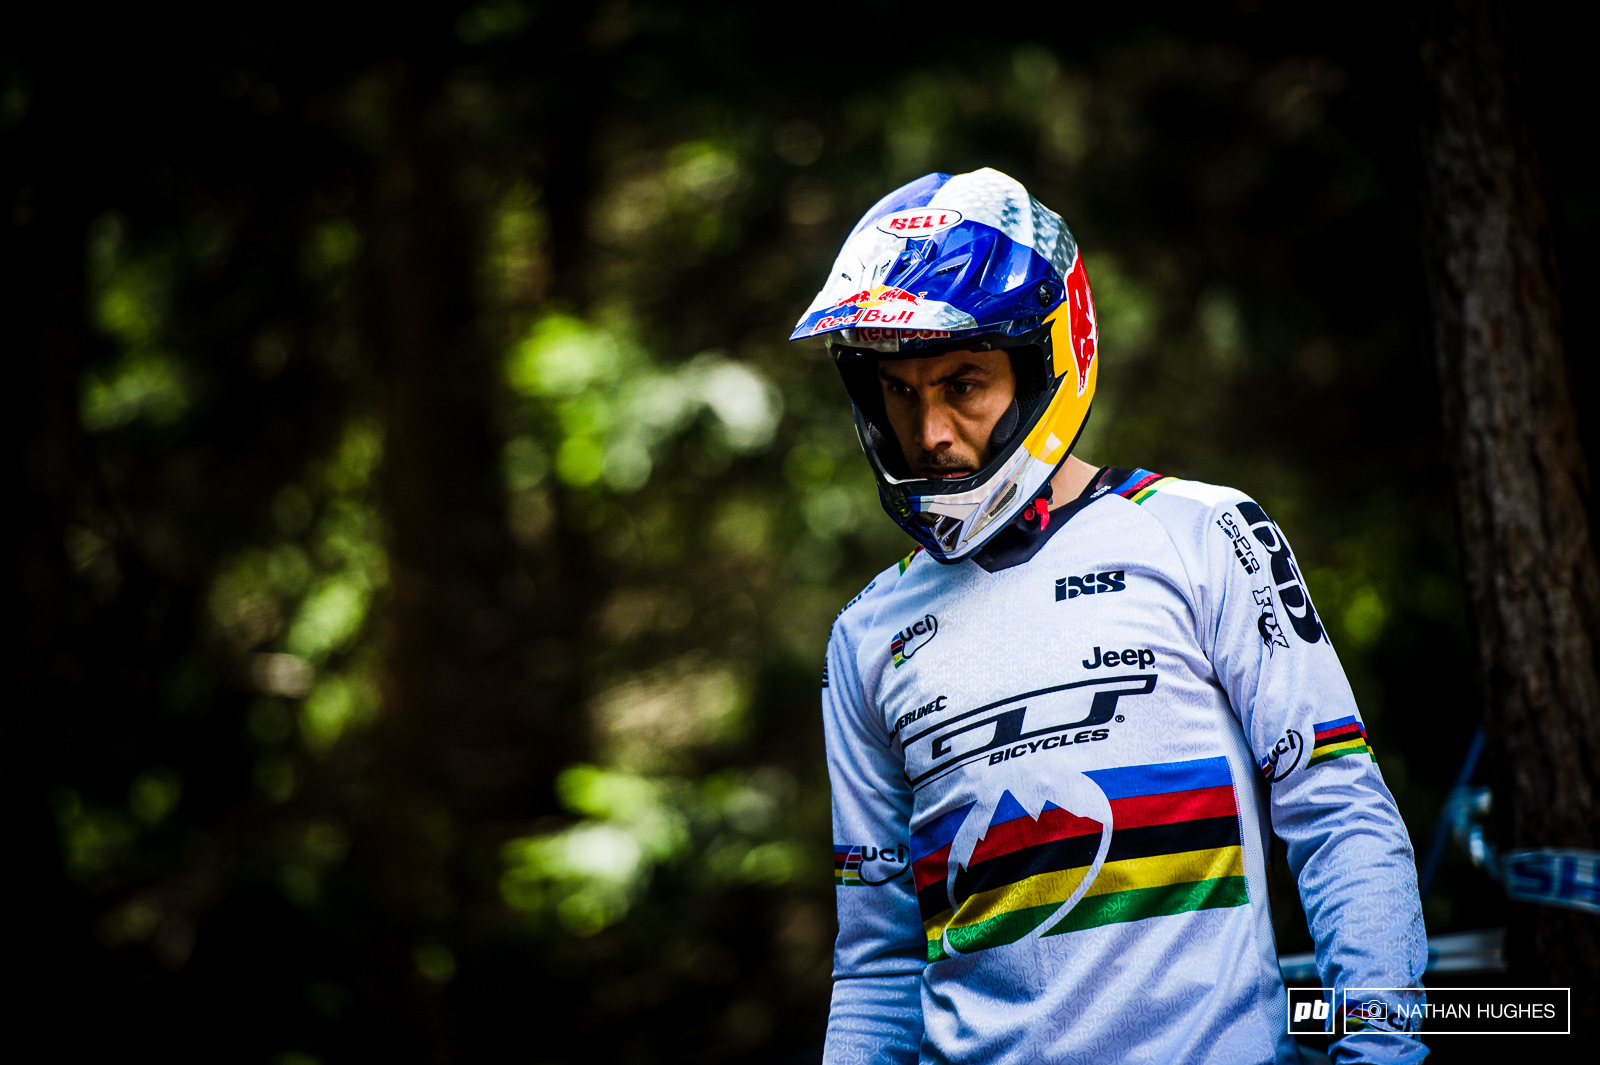 Gee Atherton wants to end a tough 2015 with a bang and get the confidence levels nice and high for Andorra when the time comes to defend his stripes.